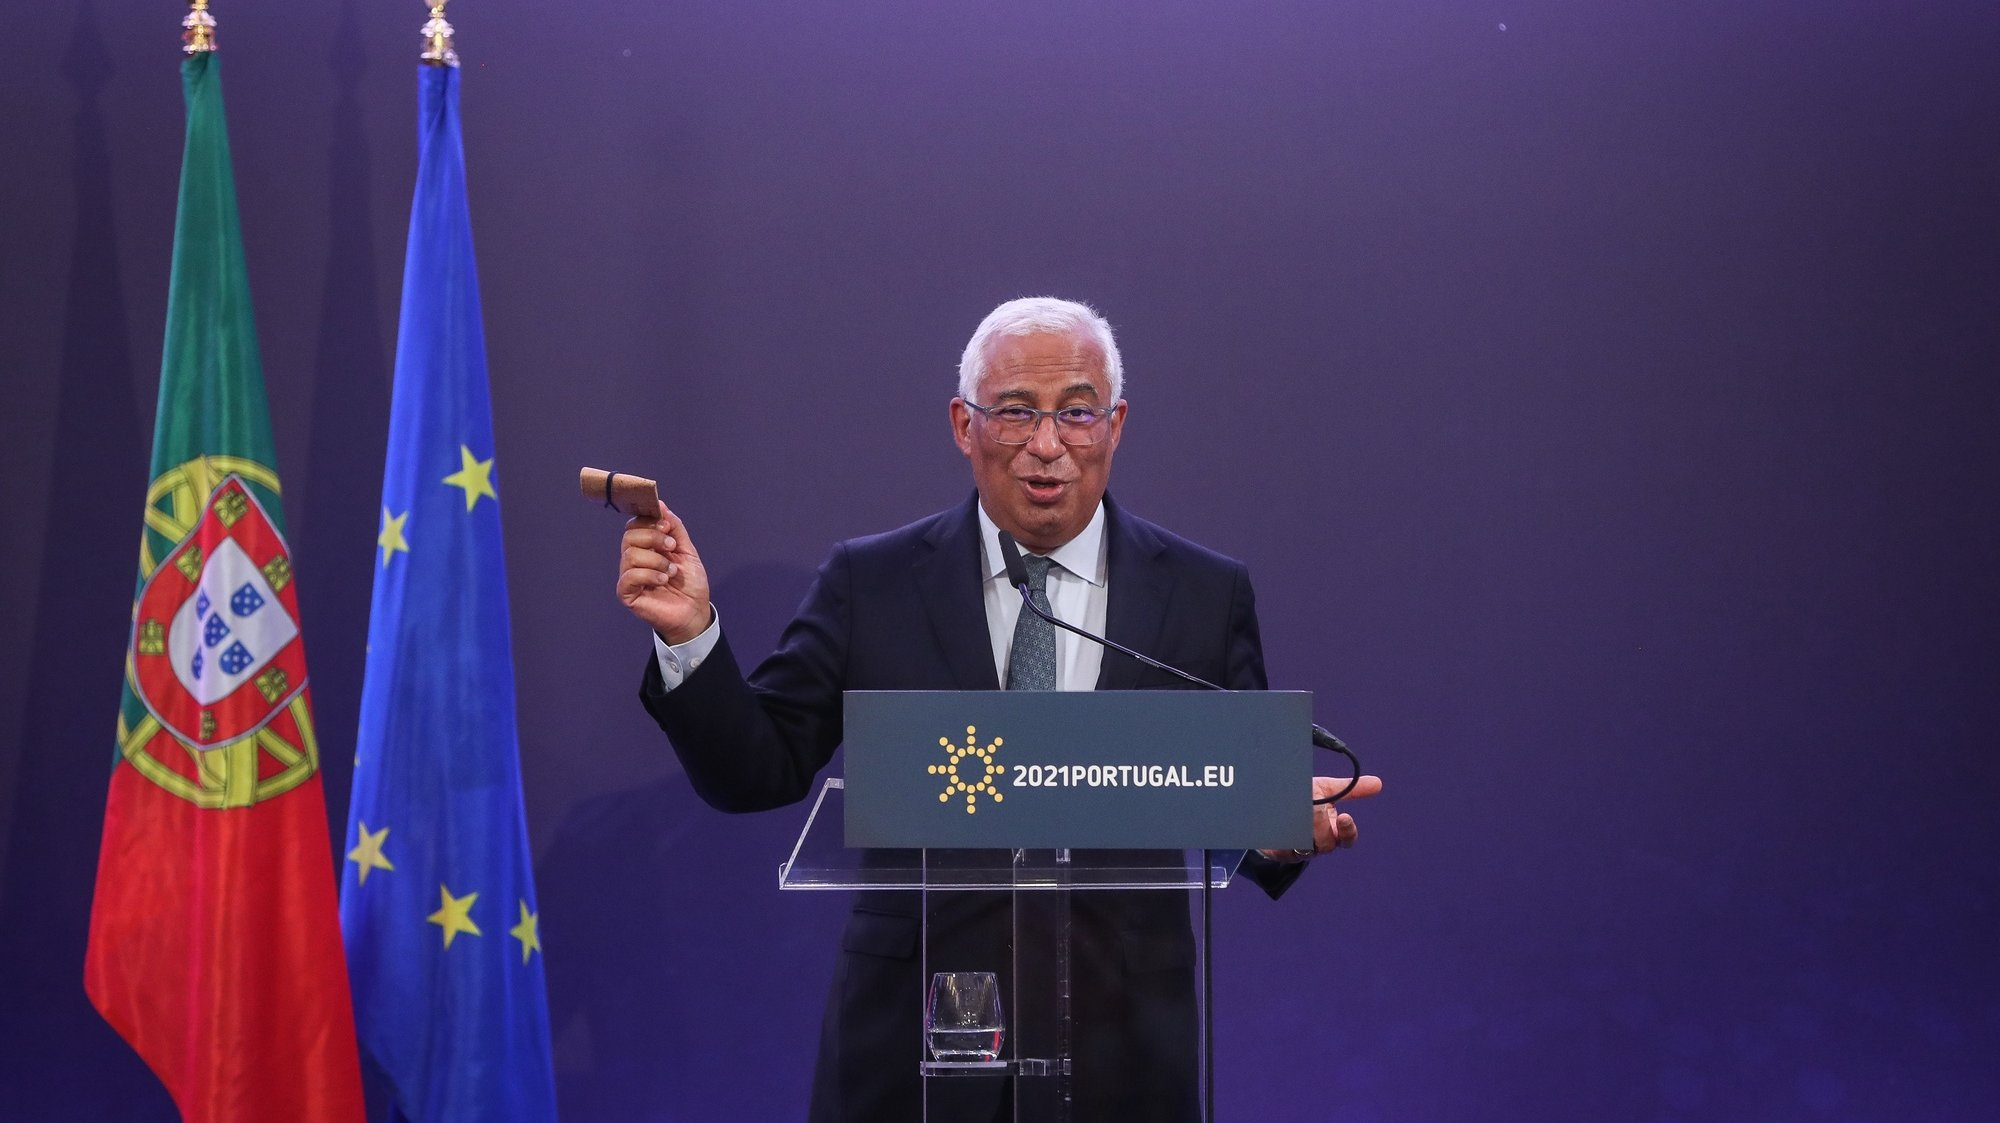 Portuguese Prime Minister, António Costa, shows a protective cork mask carrier during the press conference at the end of the European Council meeting, at Centro Cultural de Belém, Lisbon, March 25, 2021. MÁRIO CRUZ/LUSA